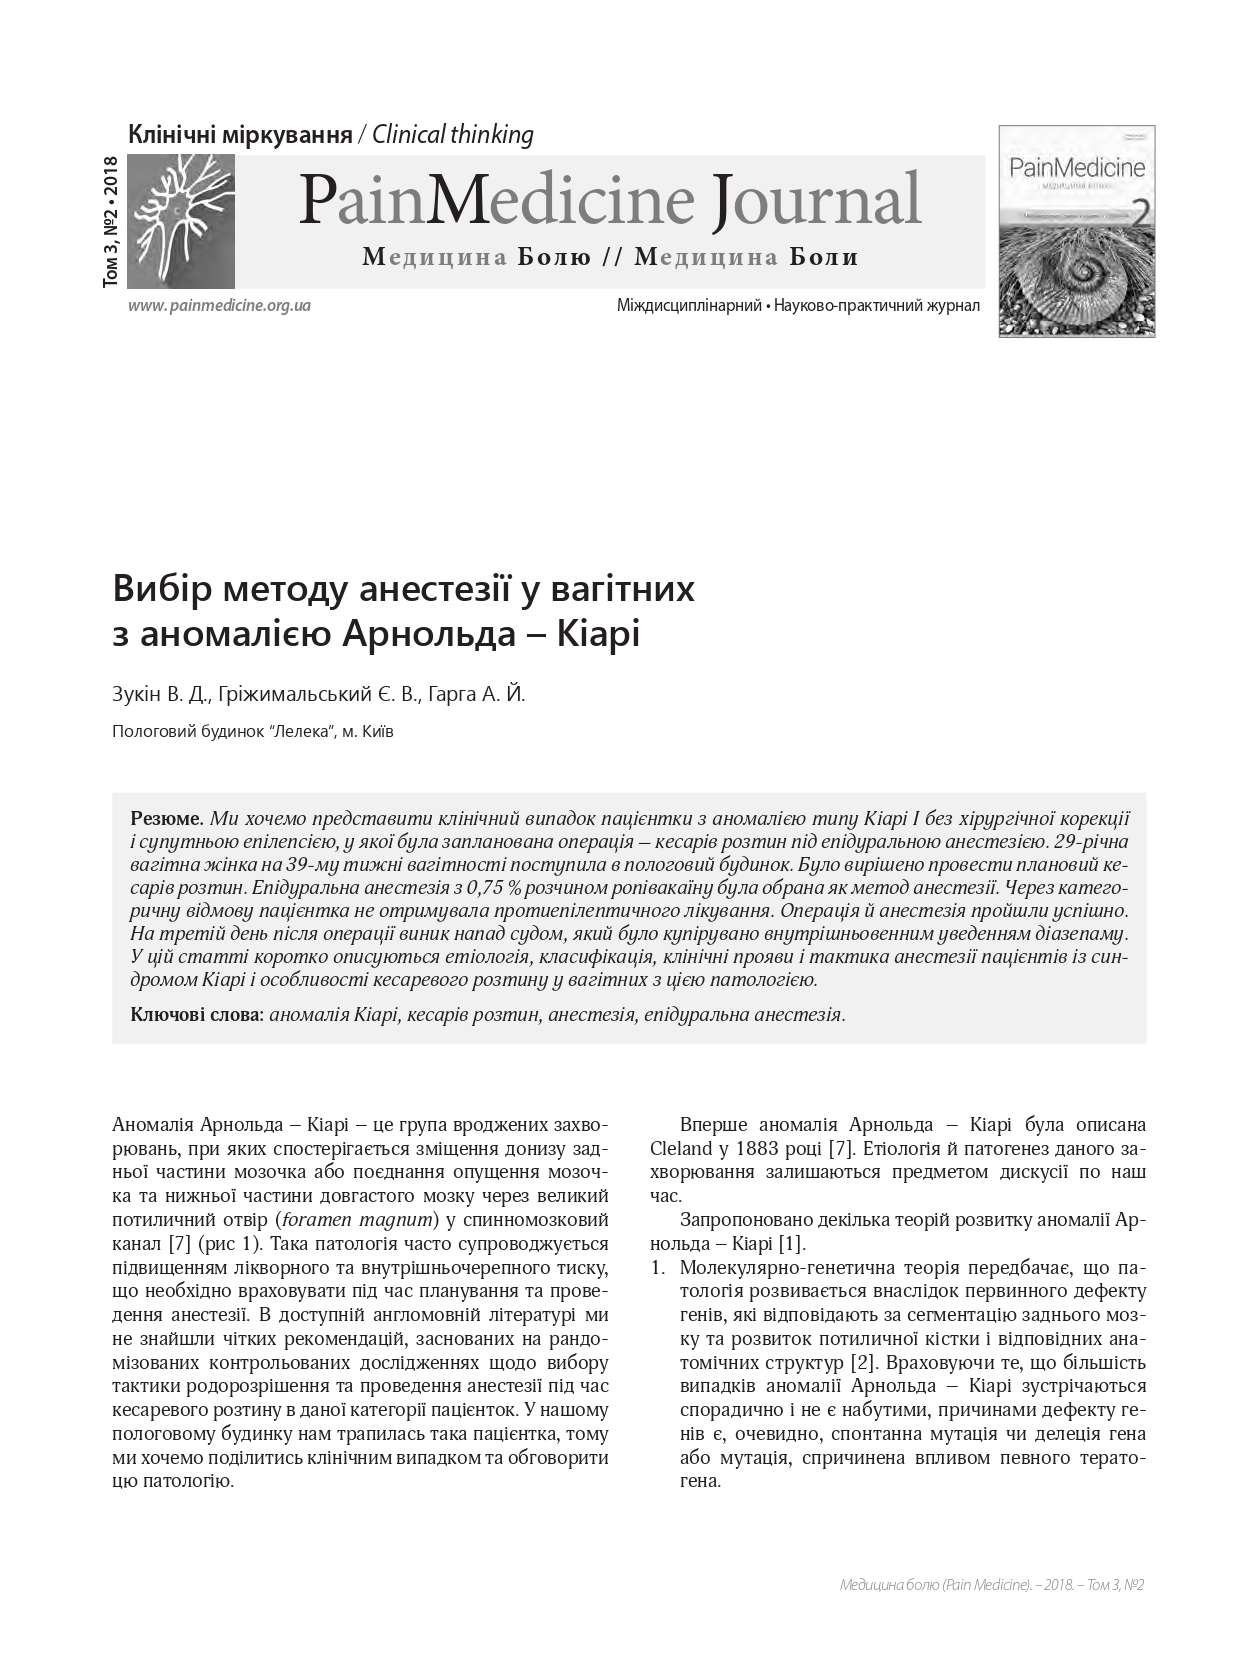 Choosing an anesthetic technique in pregnant women with Arnold – Chiari malformation